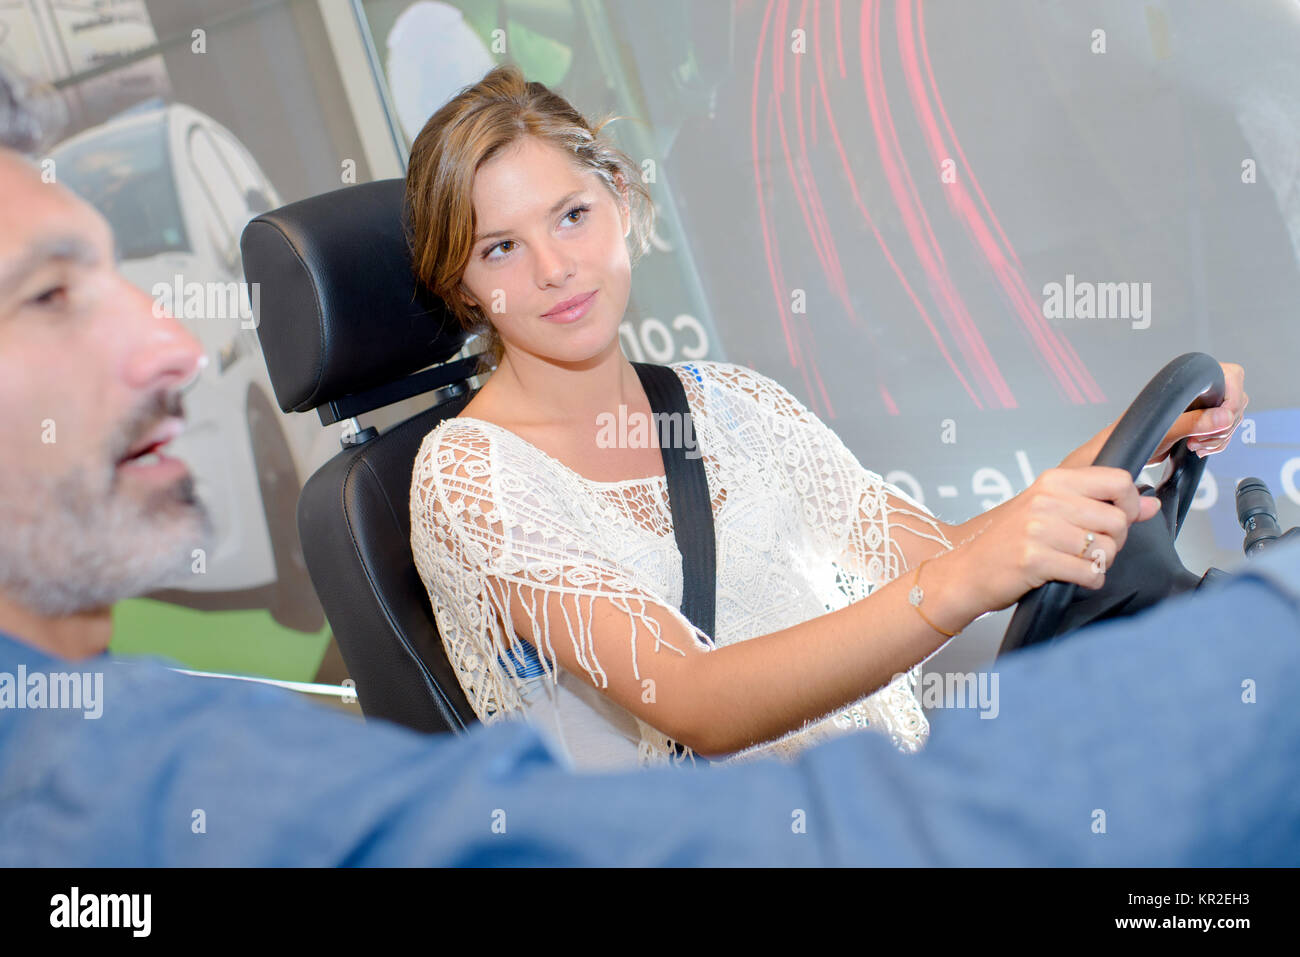 driving instructions - Stock Image